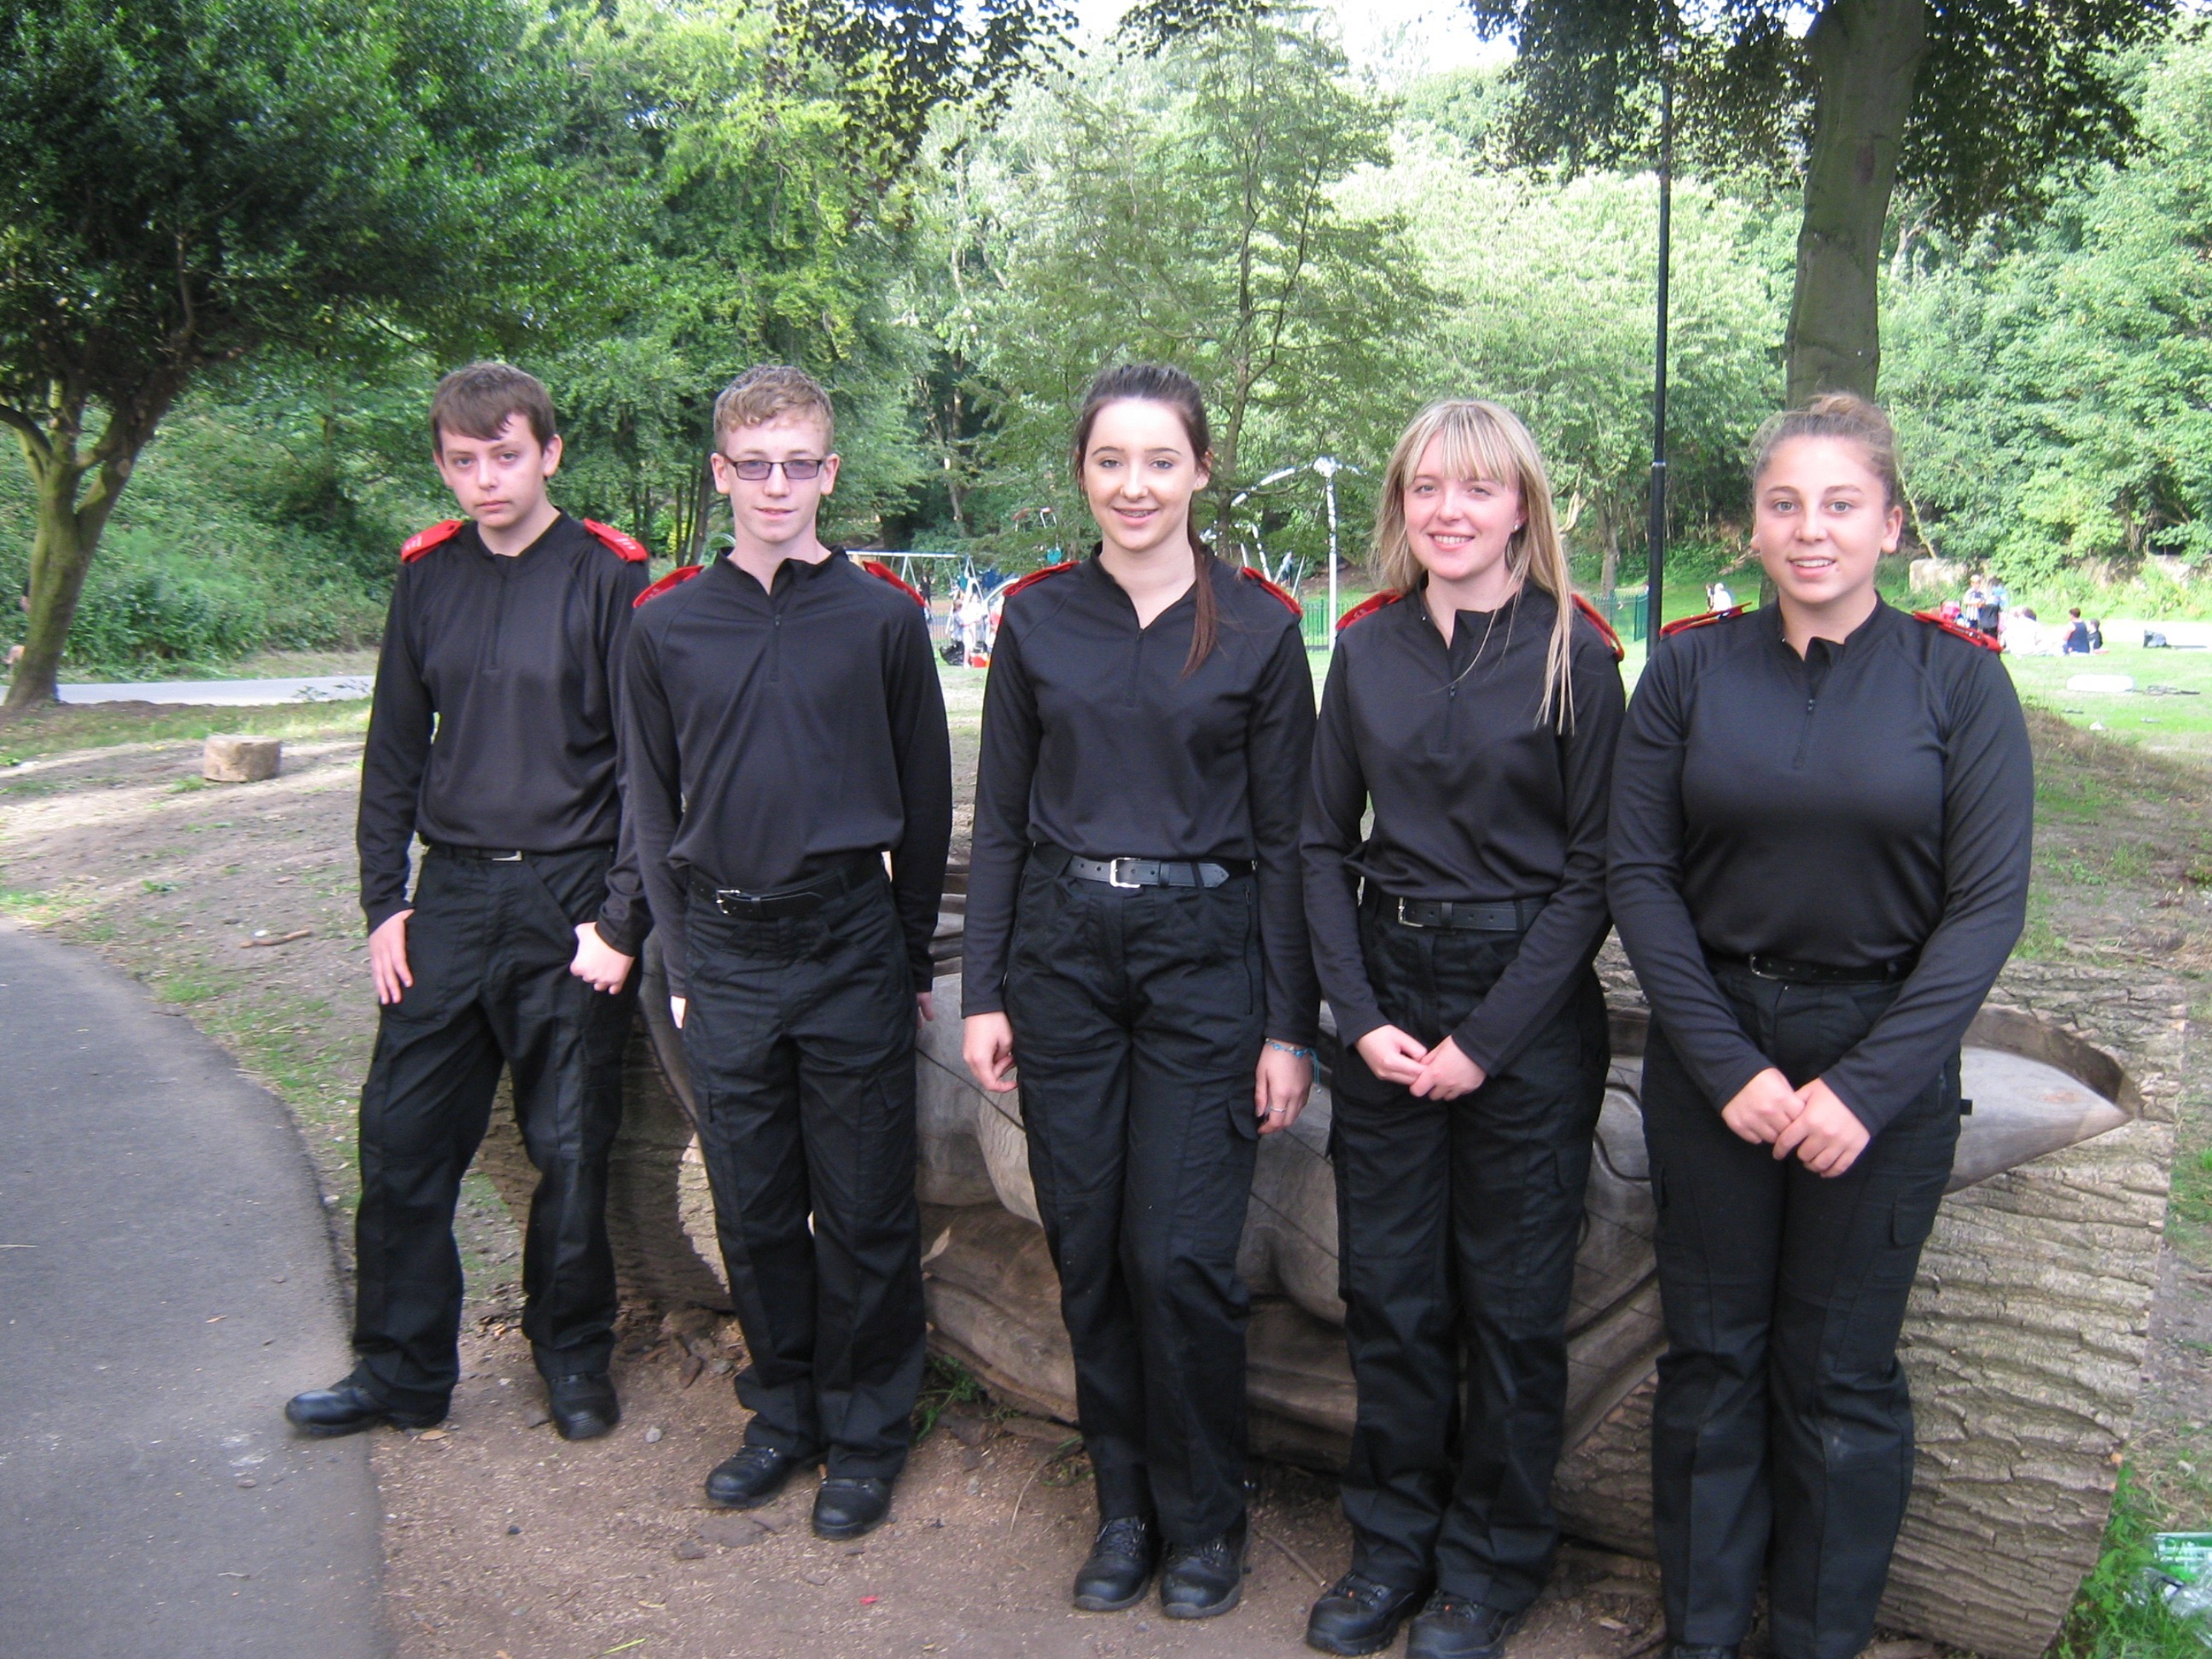 Cadets help with park festival